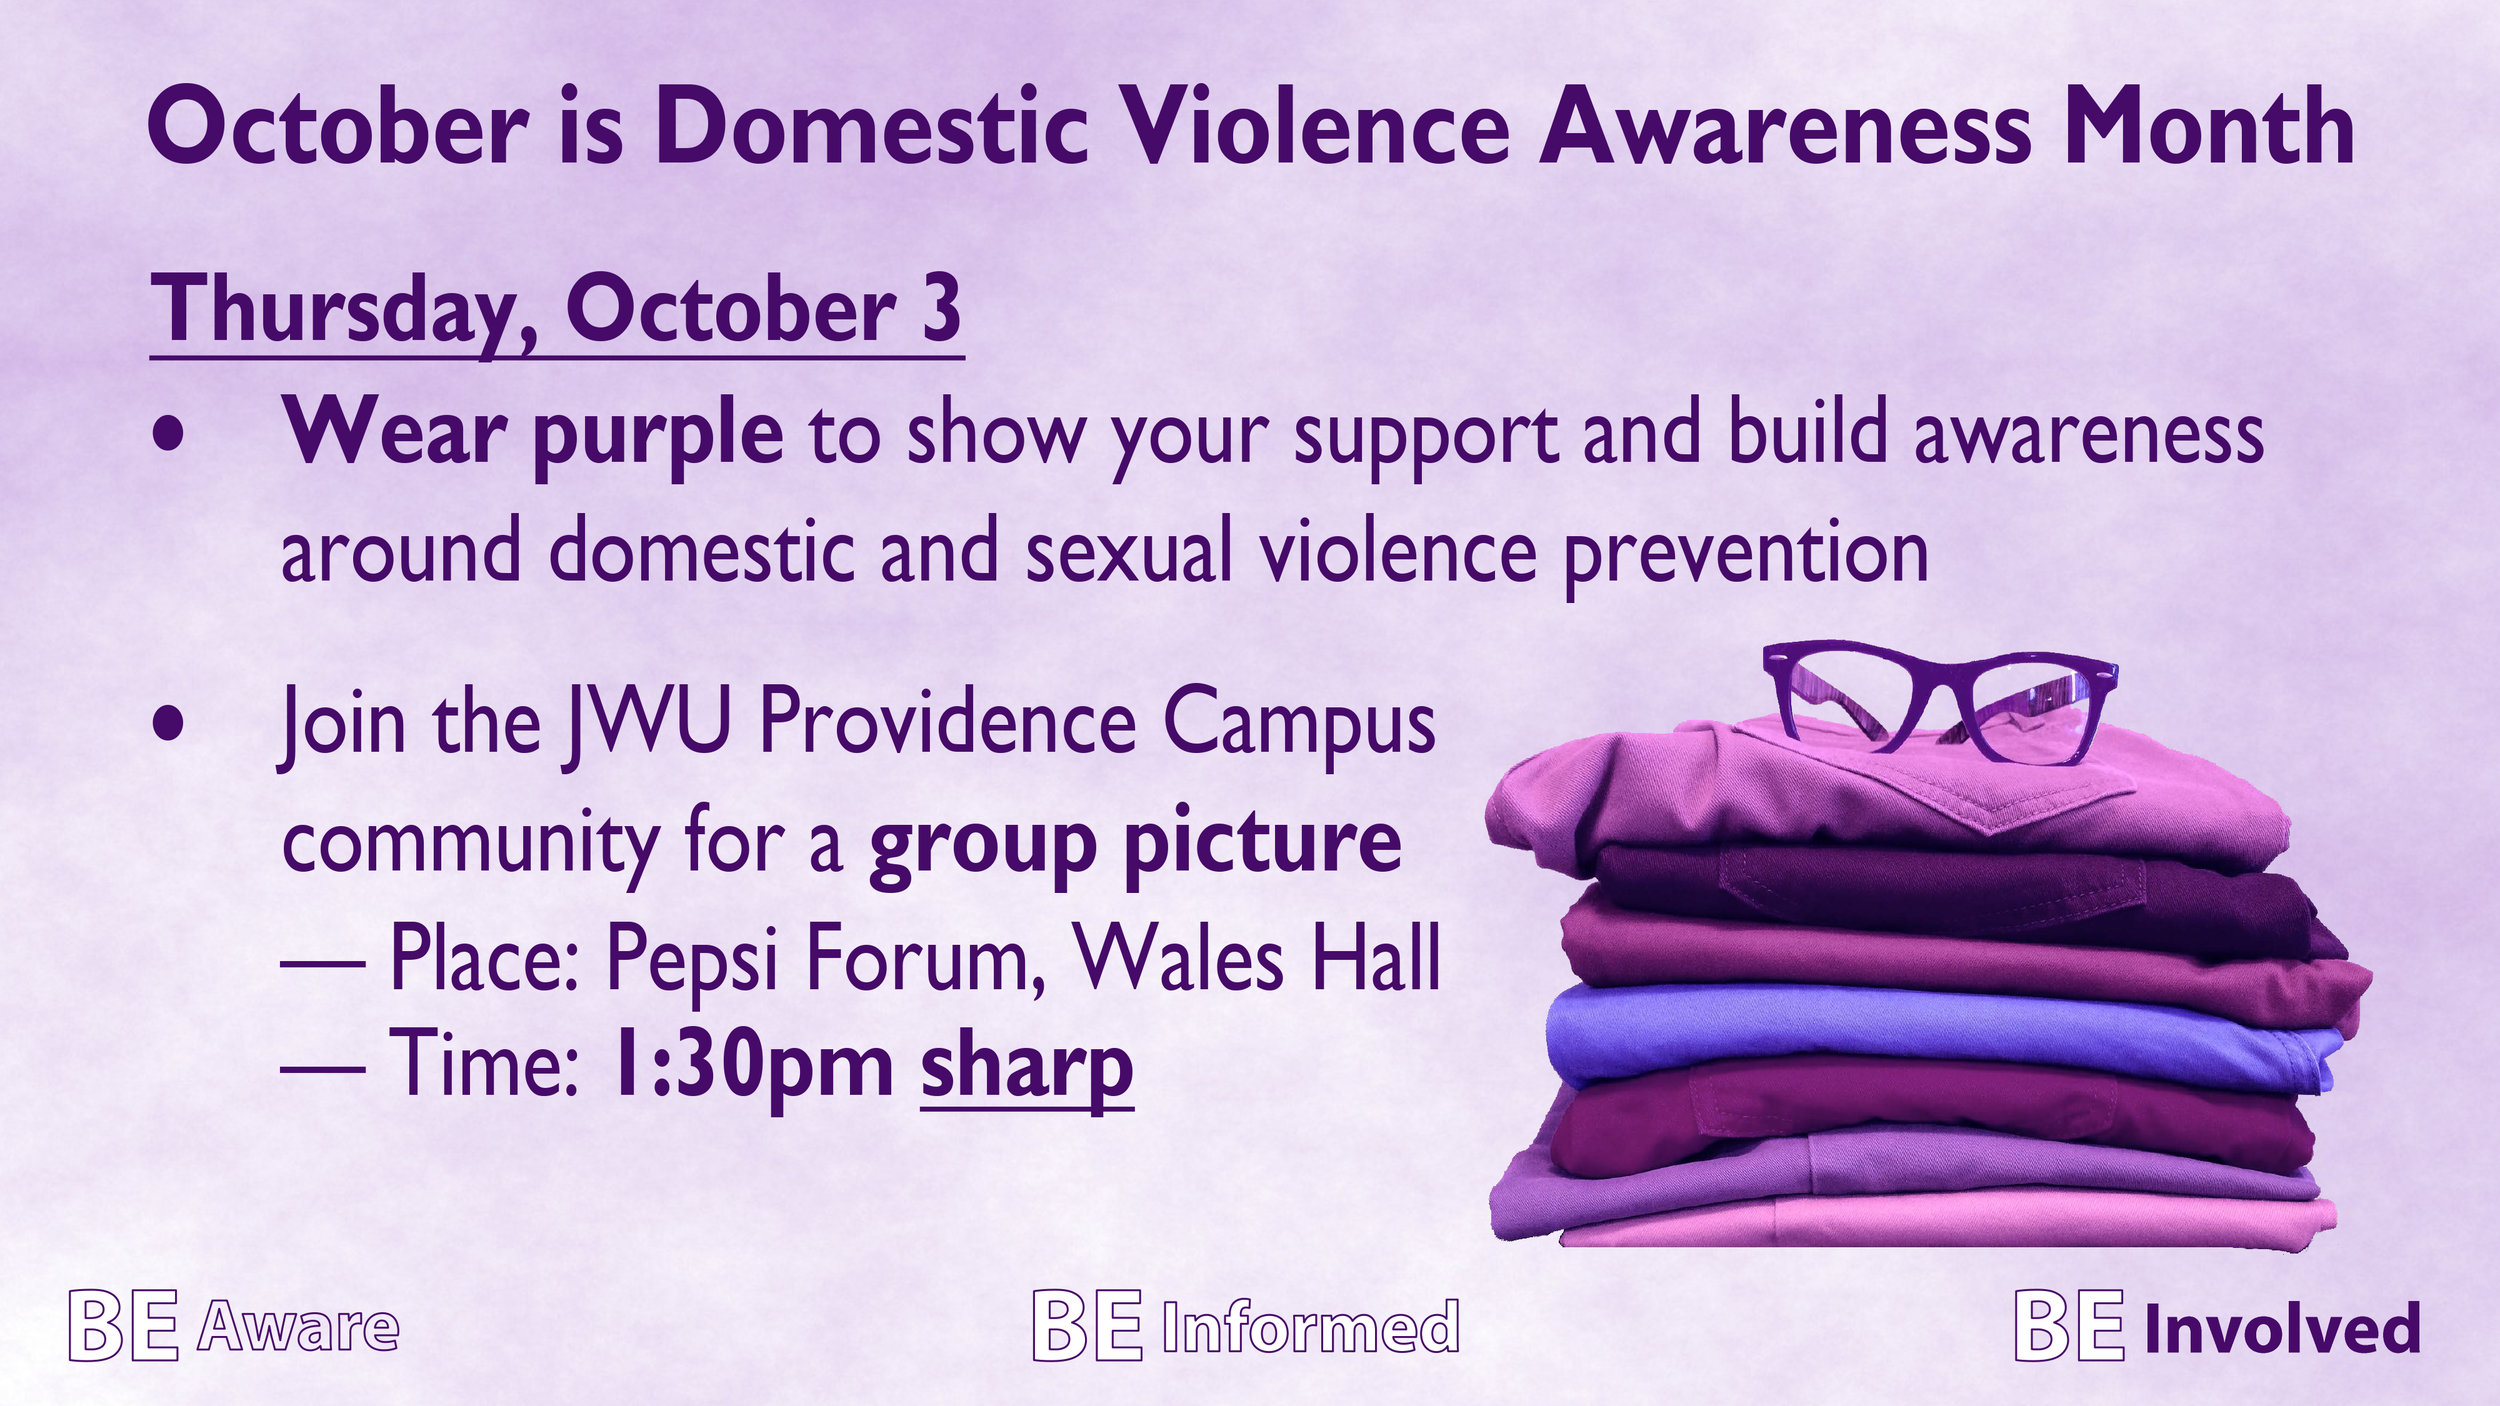 09.23.19 Purple Challenge Be Involved 2.jpg